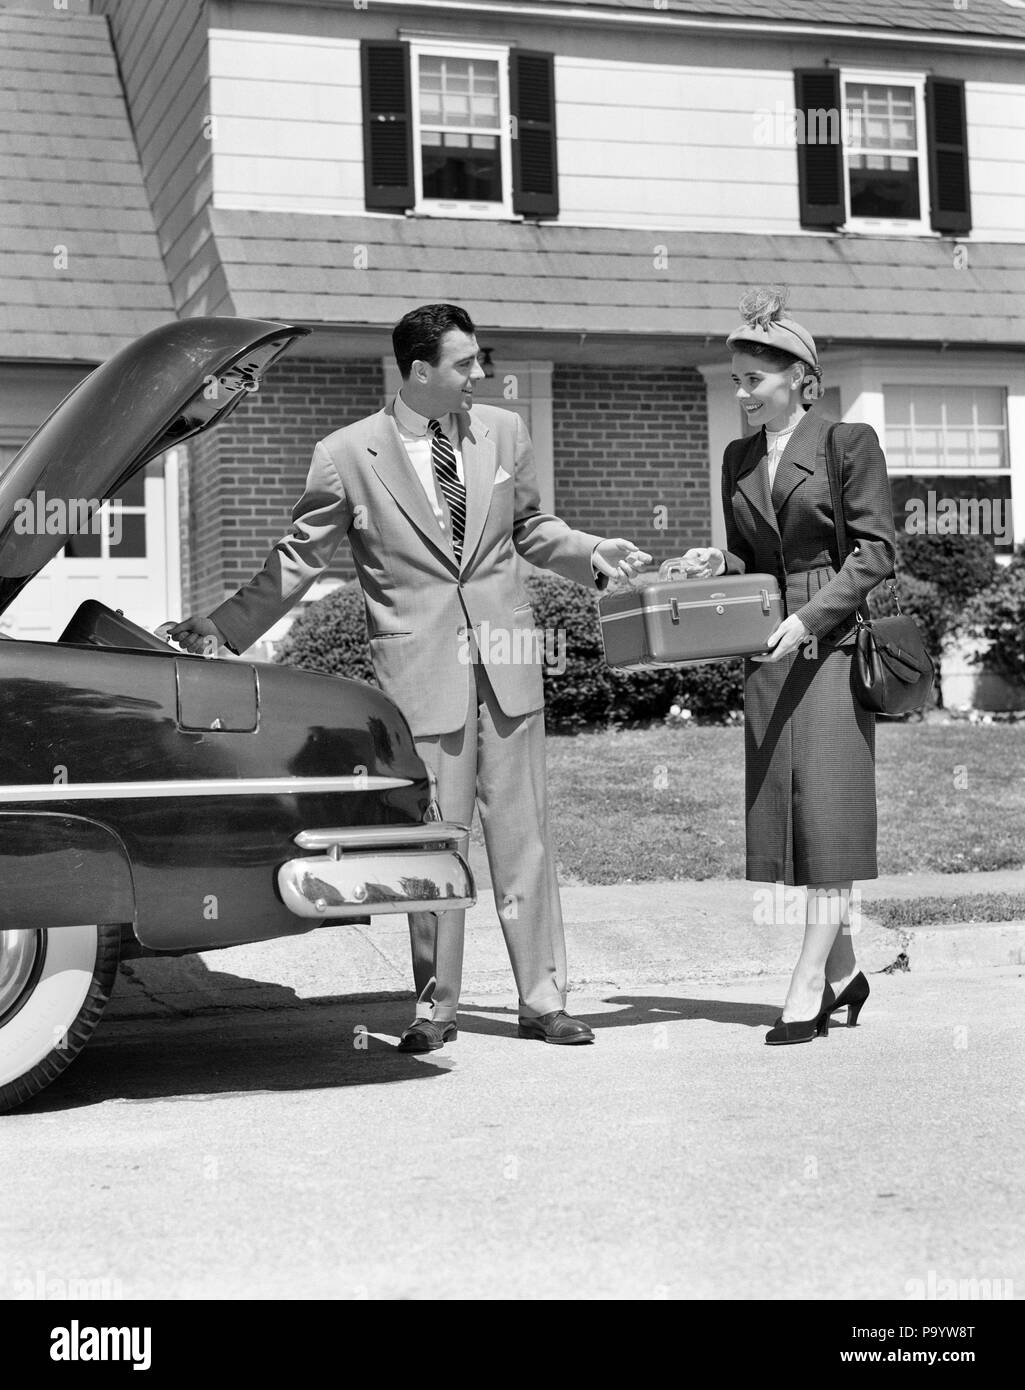 1950s COUPLE PACKING LUGGAGE IN CAR TRUNK FOR VACATION TRIP - m3529 HAR001 HARS SPOUSE HUSBANDS HOME LIFE TRANSPORT COPY SPACE FRIENDSHIP FULL-LENGTH LADIES PERSONS AUTOMOBILE MALES TRUNK BUILDINGS TRANSPORTATION B&W STRUCTURE HAPPINESS ADVENTURE PROPERTY STYLES MOTOR VEHICLE TRIP AUTOS EXCITEMENT MOTORING AUTOMOBILES STYLISH VEHICLES EDIFICE FASHIONS MID-ADULT MID-ADULT MAN MID-ADULT WOMAN TOGETHERNESS WIVES BLACK AND WHITE CAUCASIAN ETHNICITY HAR001 OLD FASHIONED - Stock Image